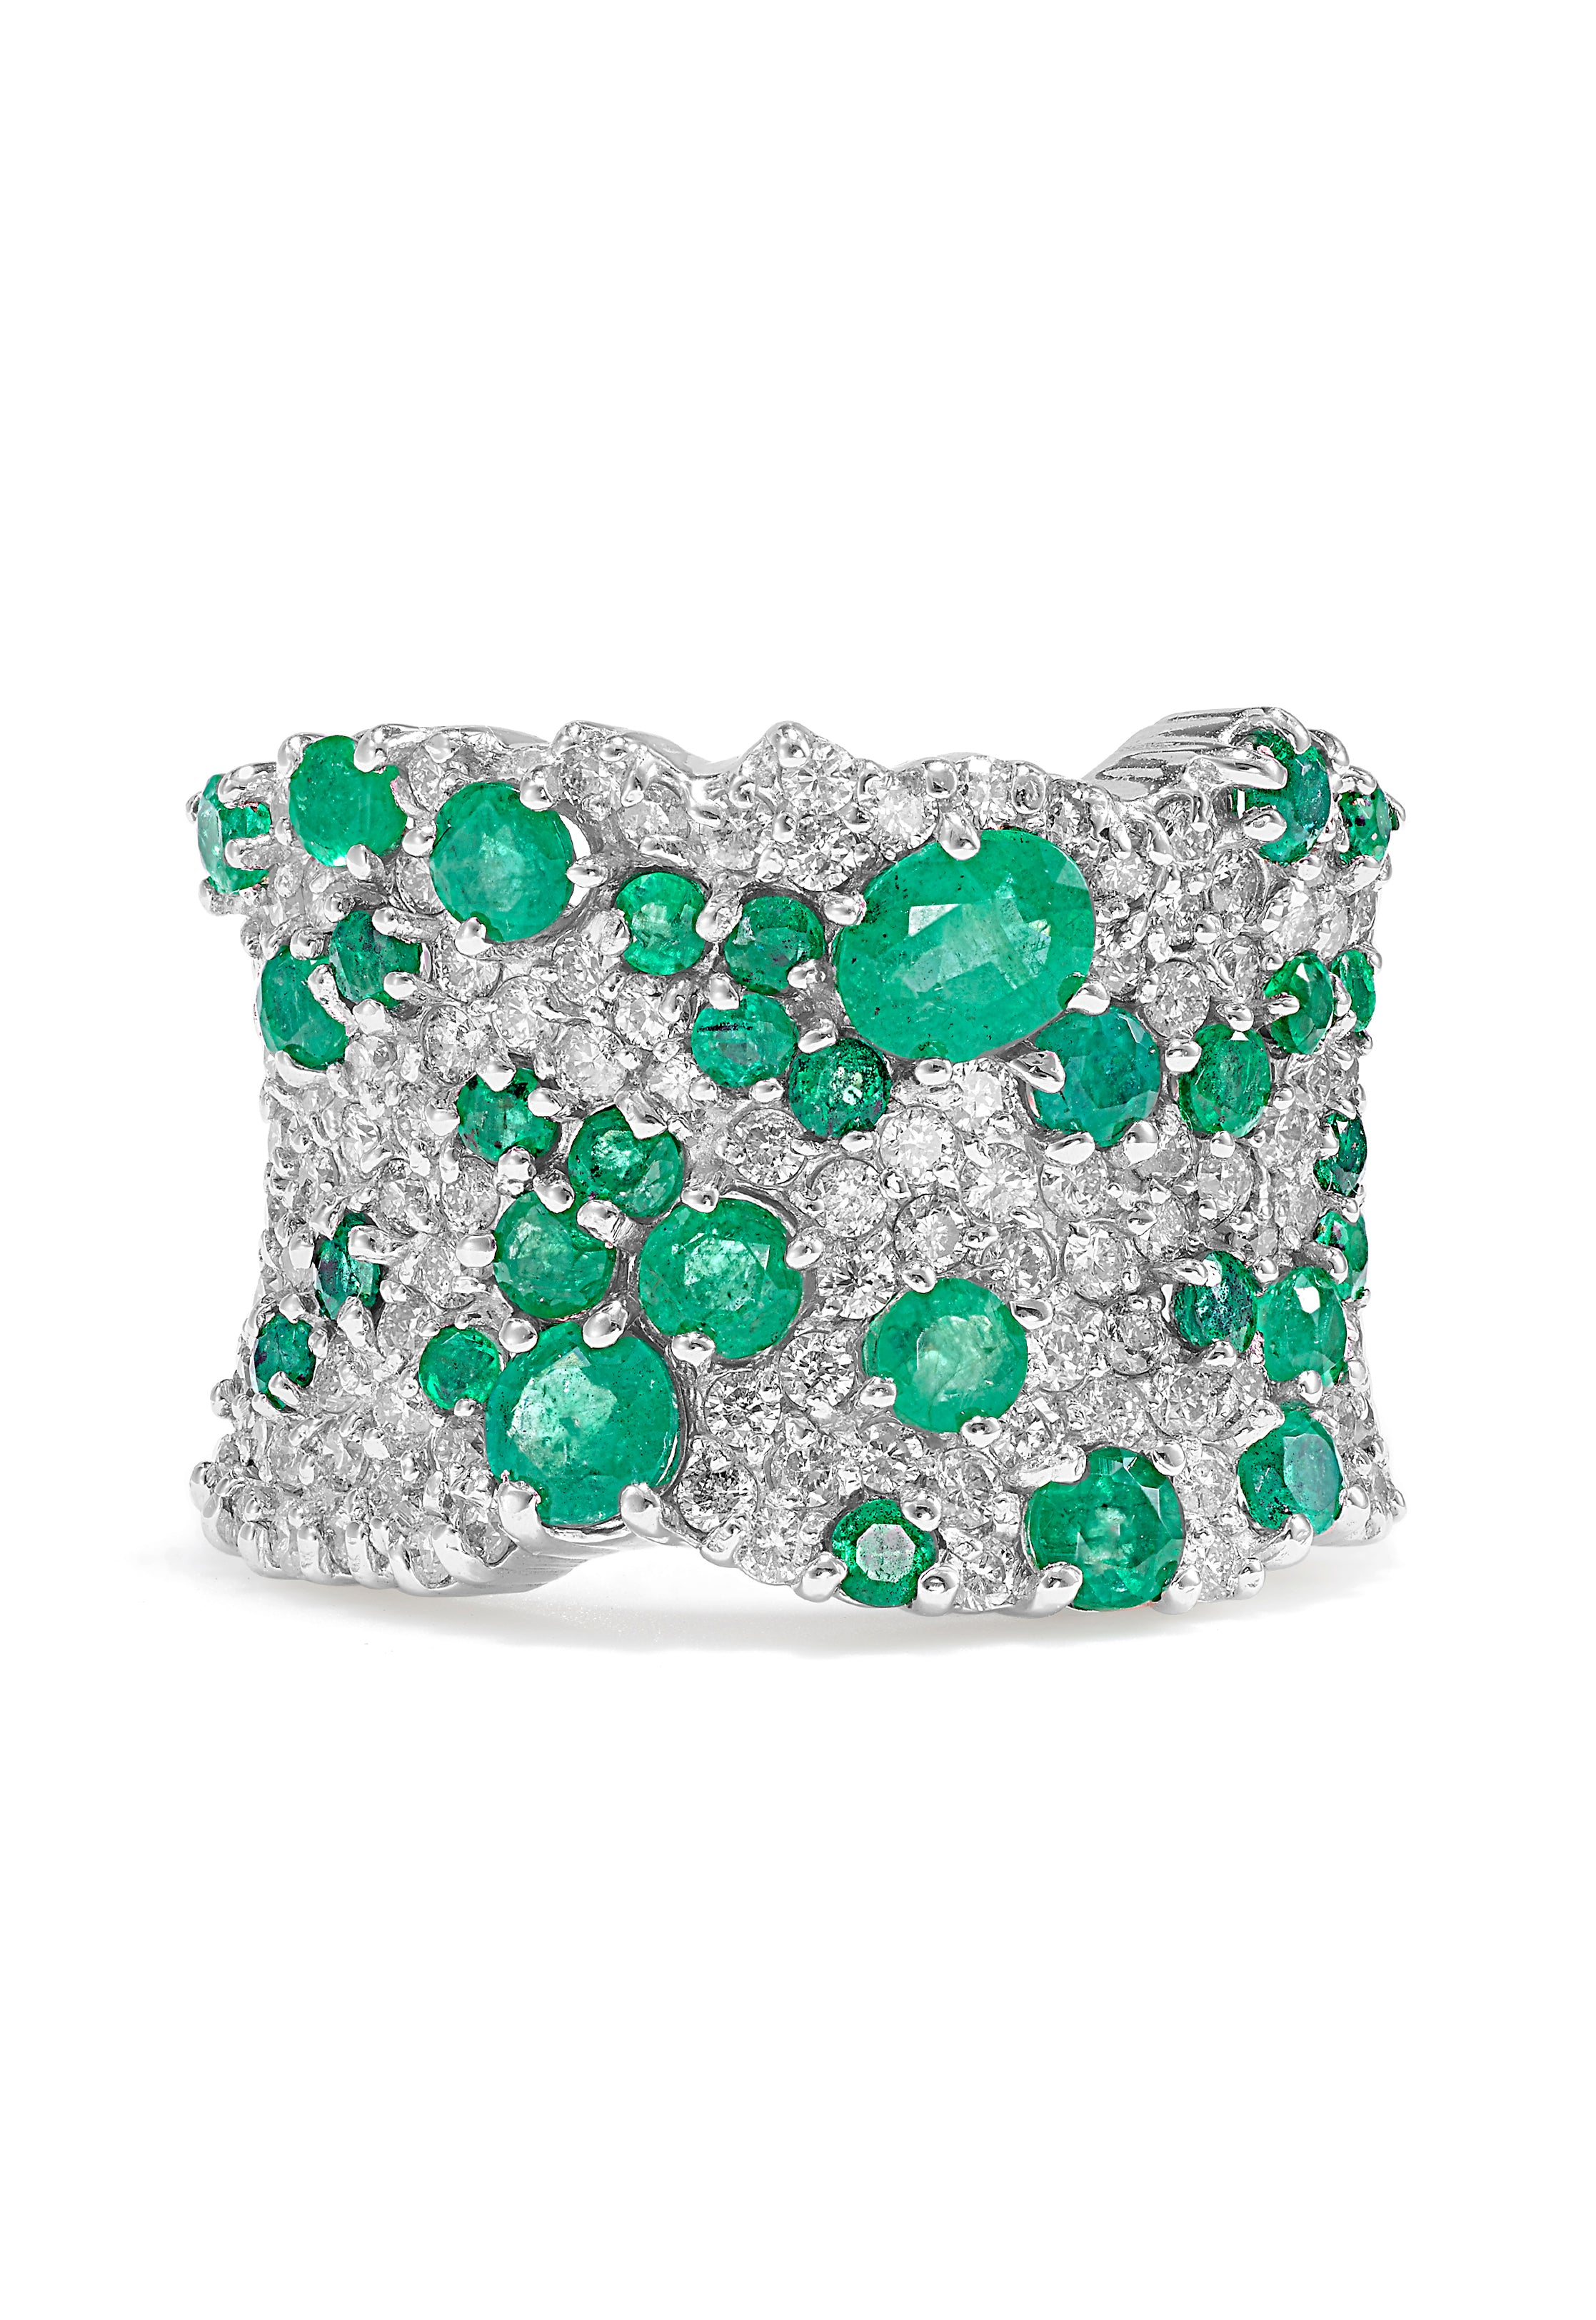 Effy Brasilica 14K White Gold Emerald and Diamond Ring, 3.35 TCW